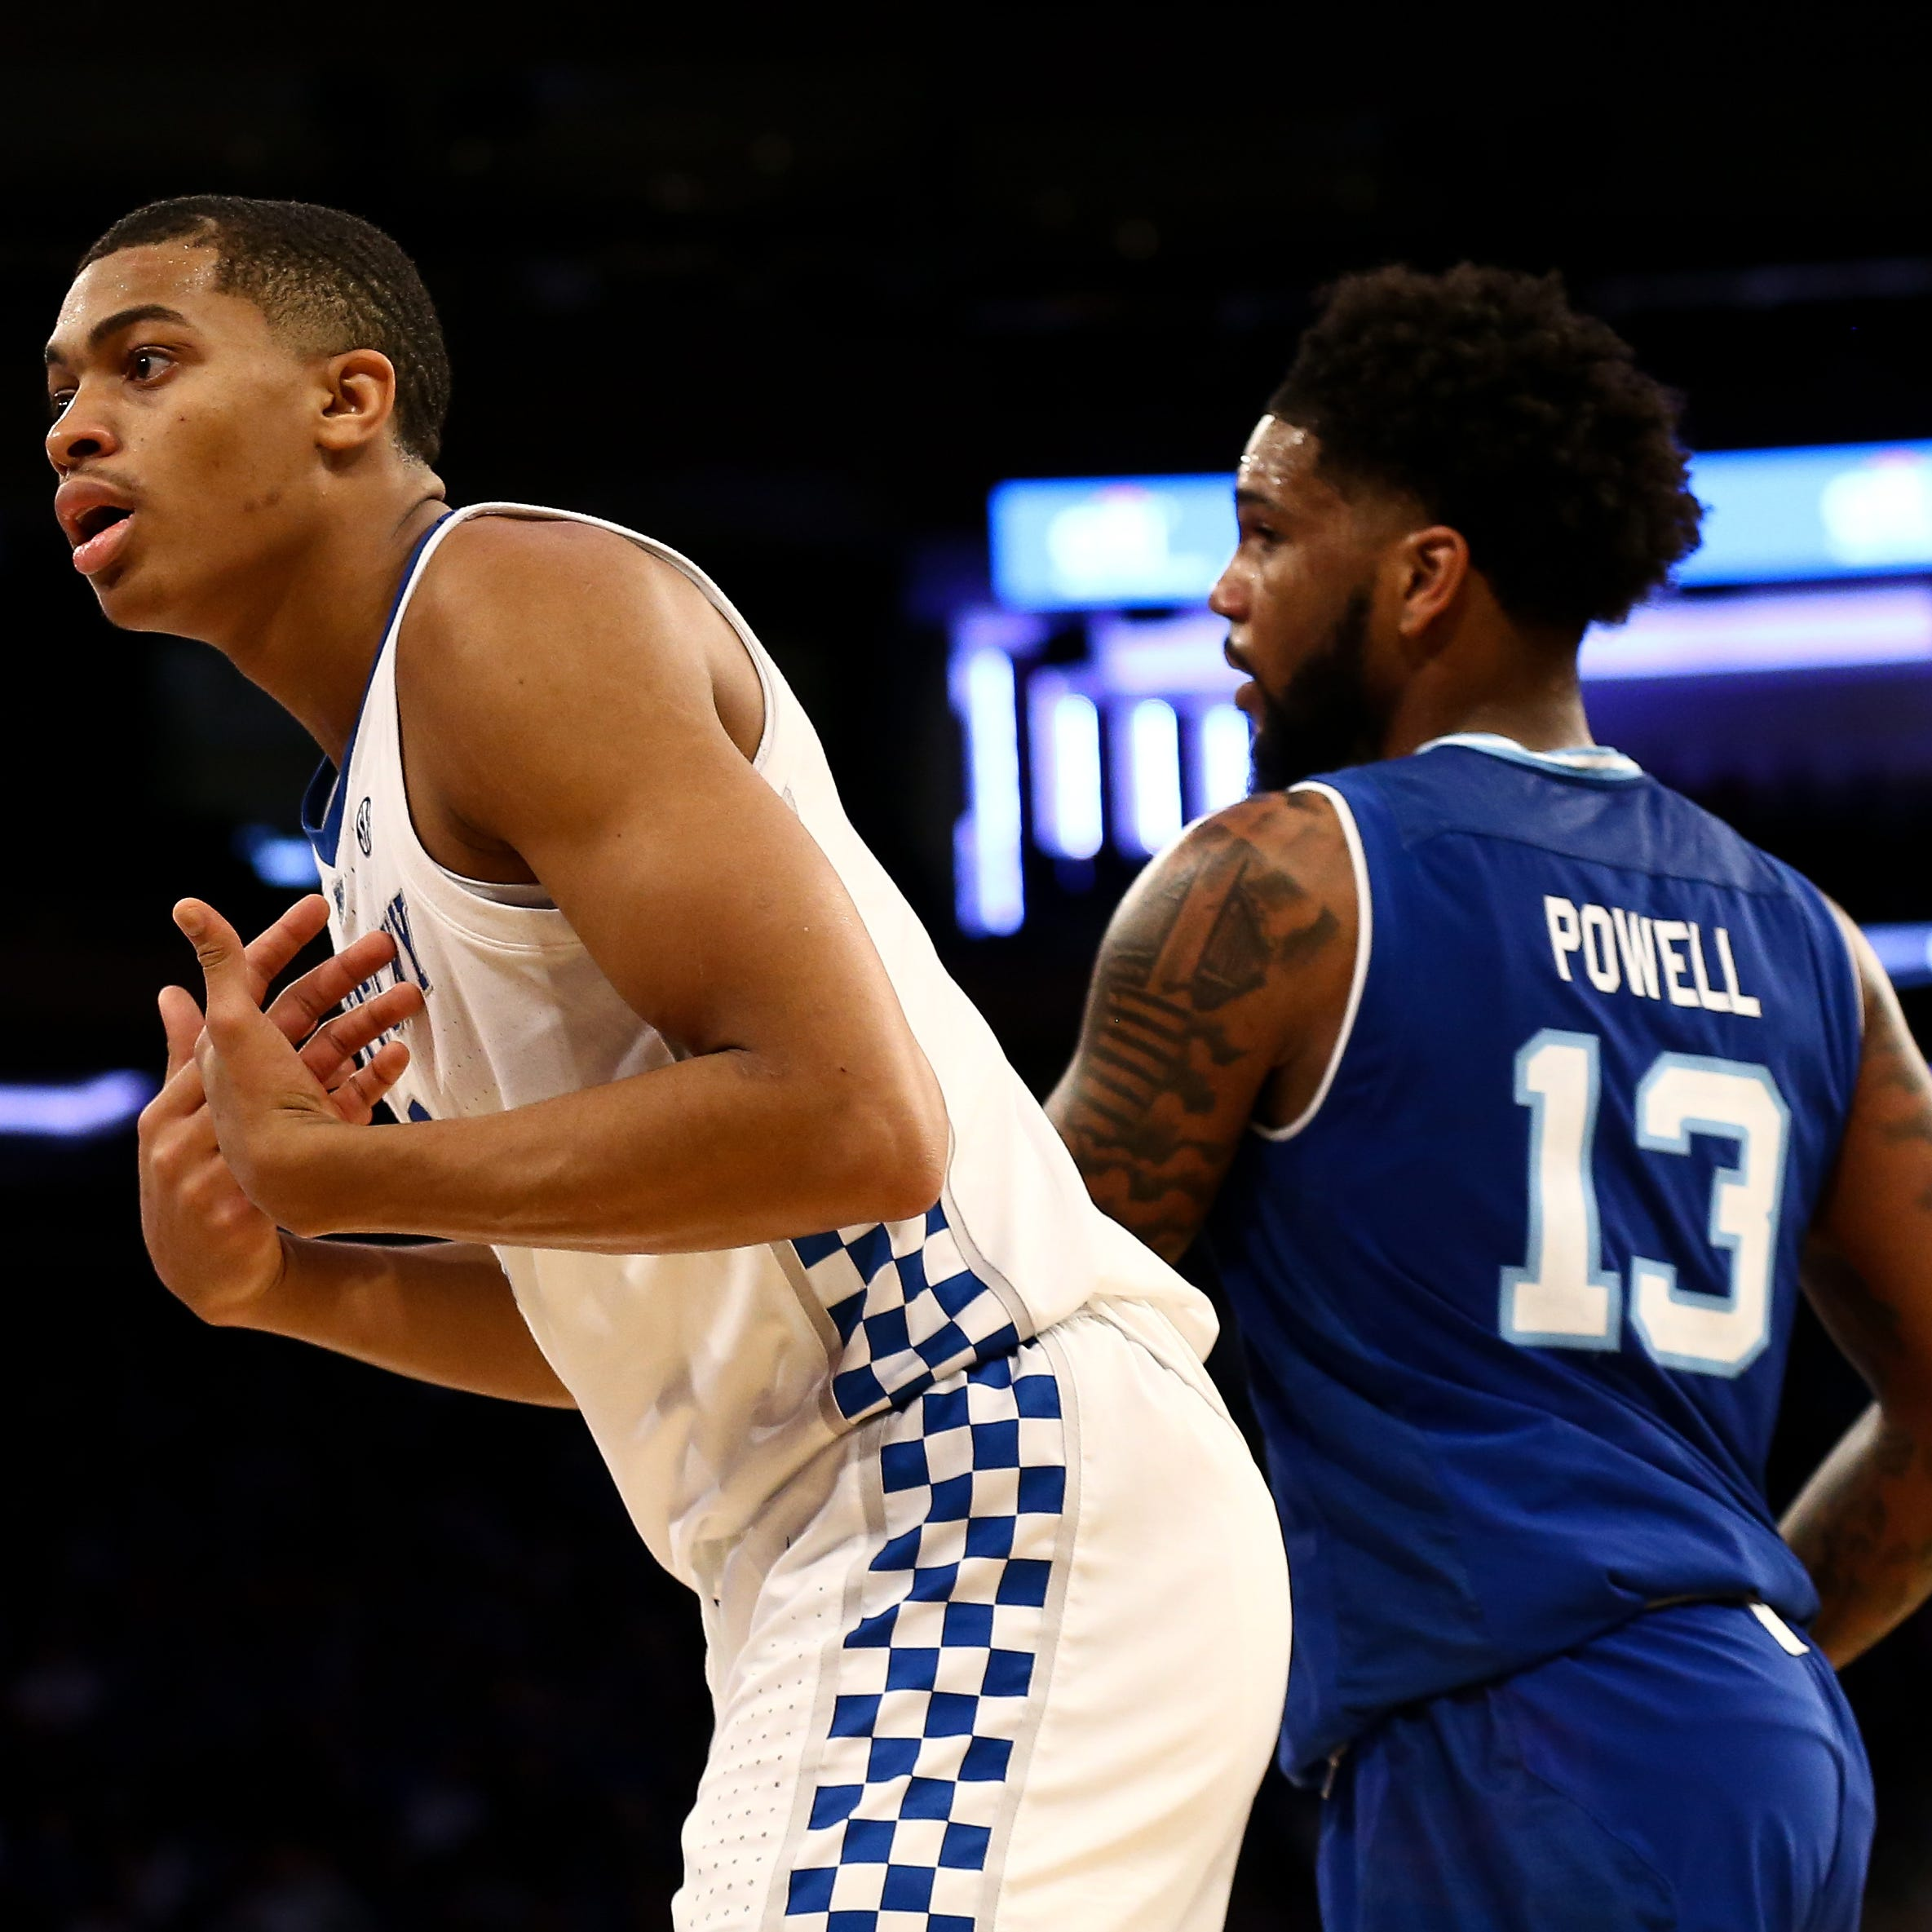 How far did Kentucky basketball fall after Seton Hall in the top 25?